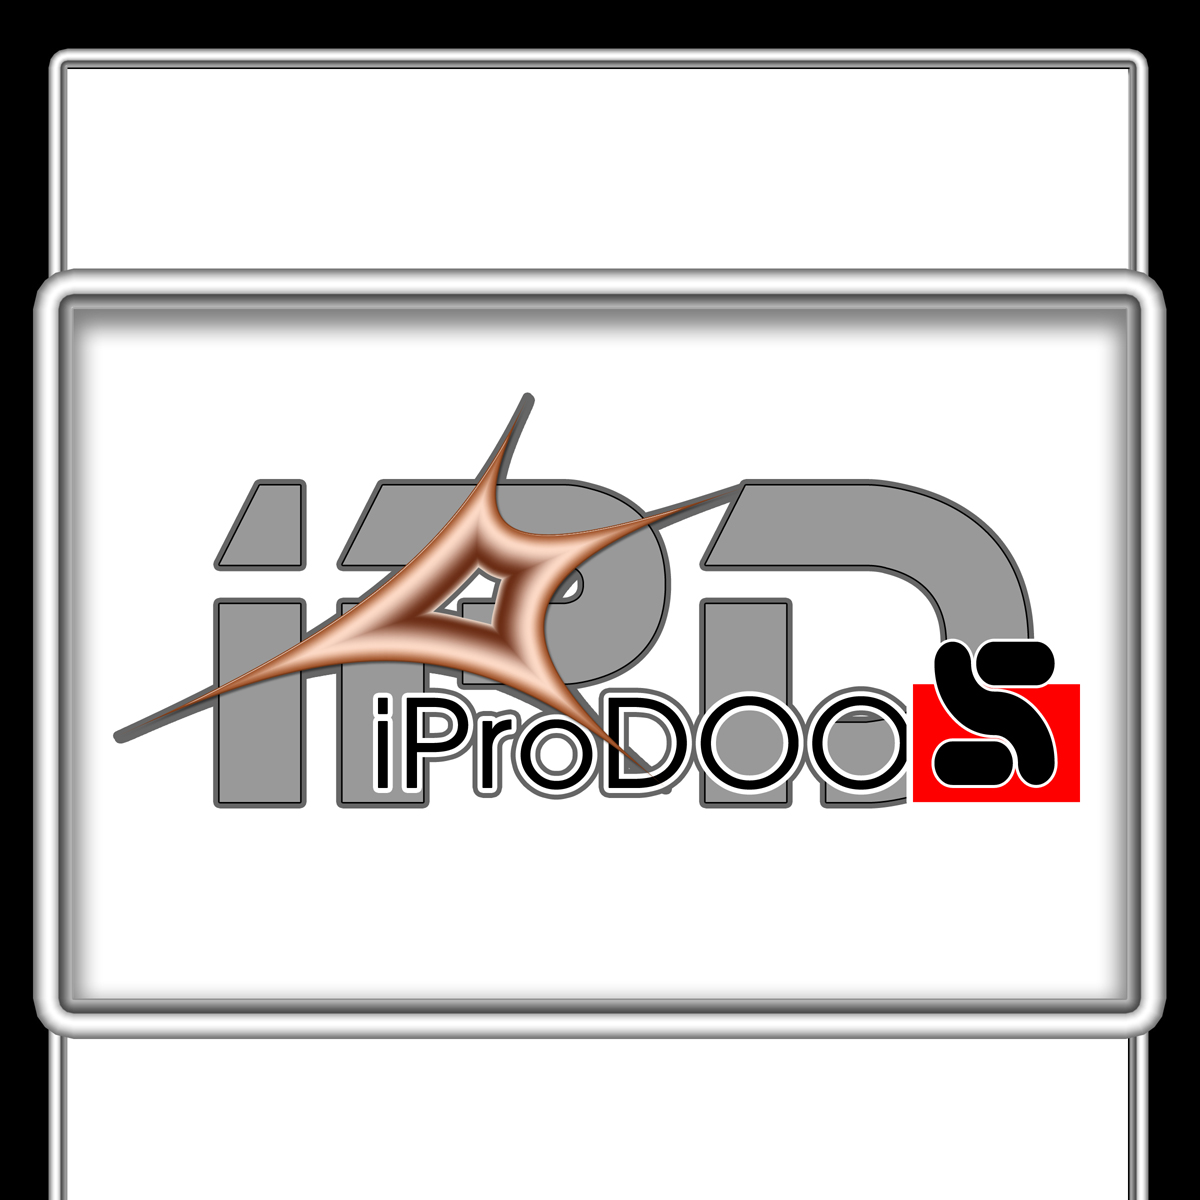 Logo Design by MITUCA ANDREI - Entry No. 49 in the Logo Design Contest New Logo Design for iProdoos.